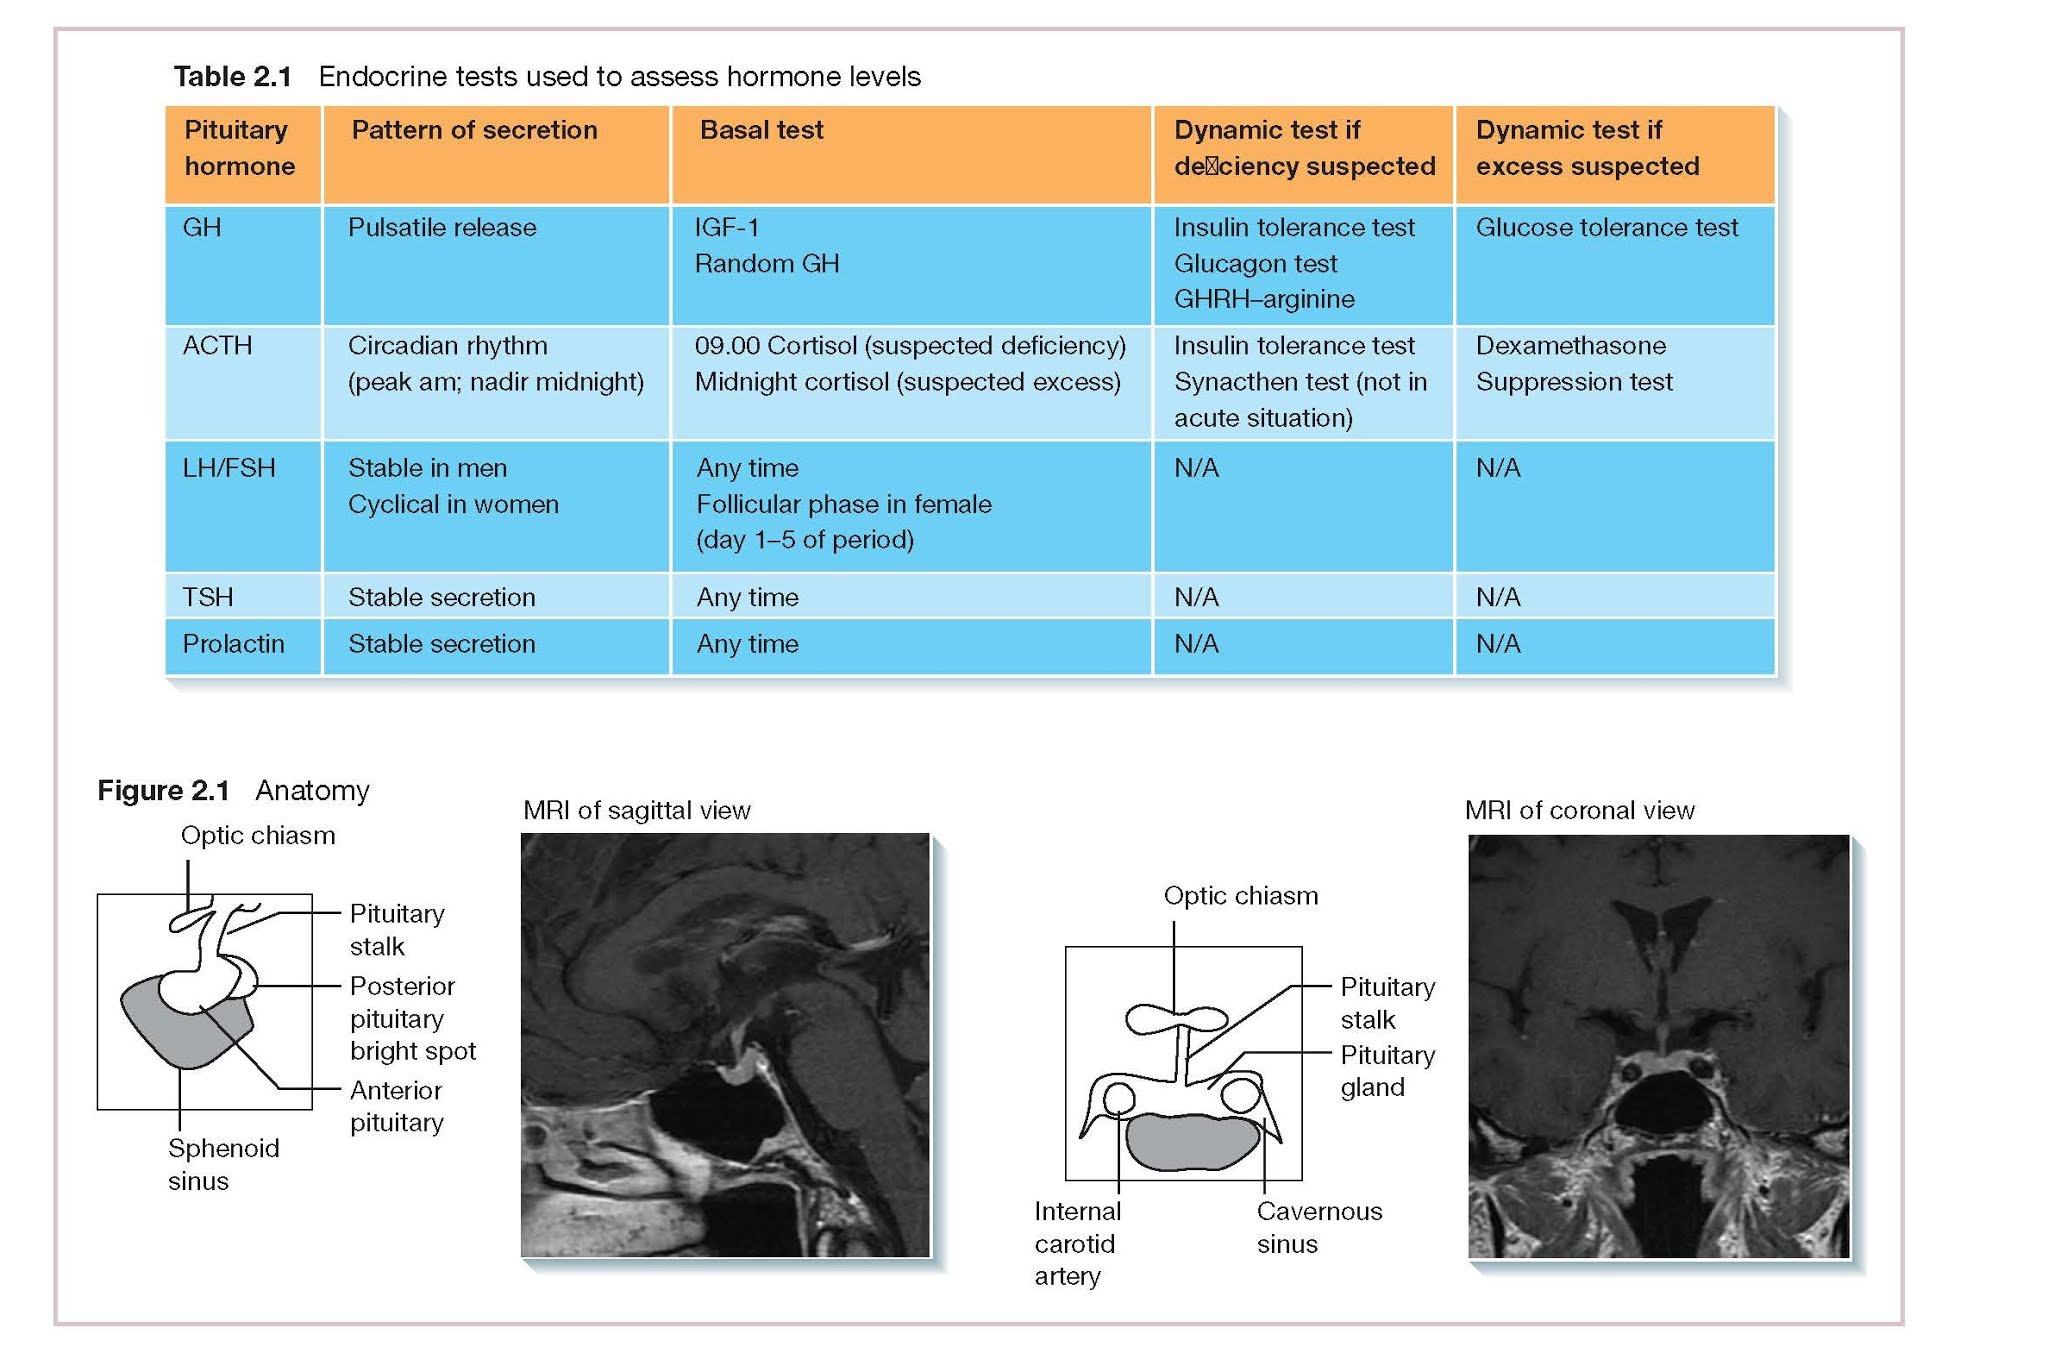 The Hypothalamic Pituitary Axis 2 And Its Assessment, Growth hormone, ACTH, Gonadotrophins (FSH and LH), TSH, Prolactin